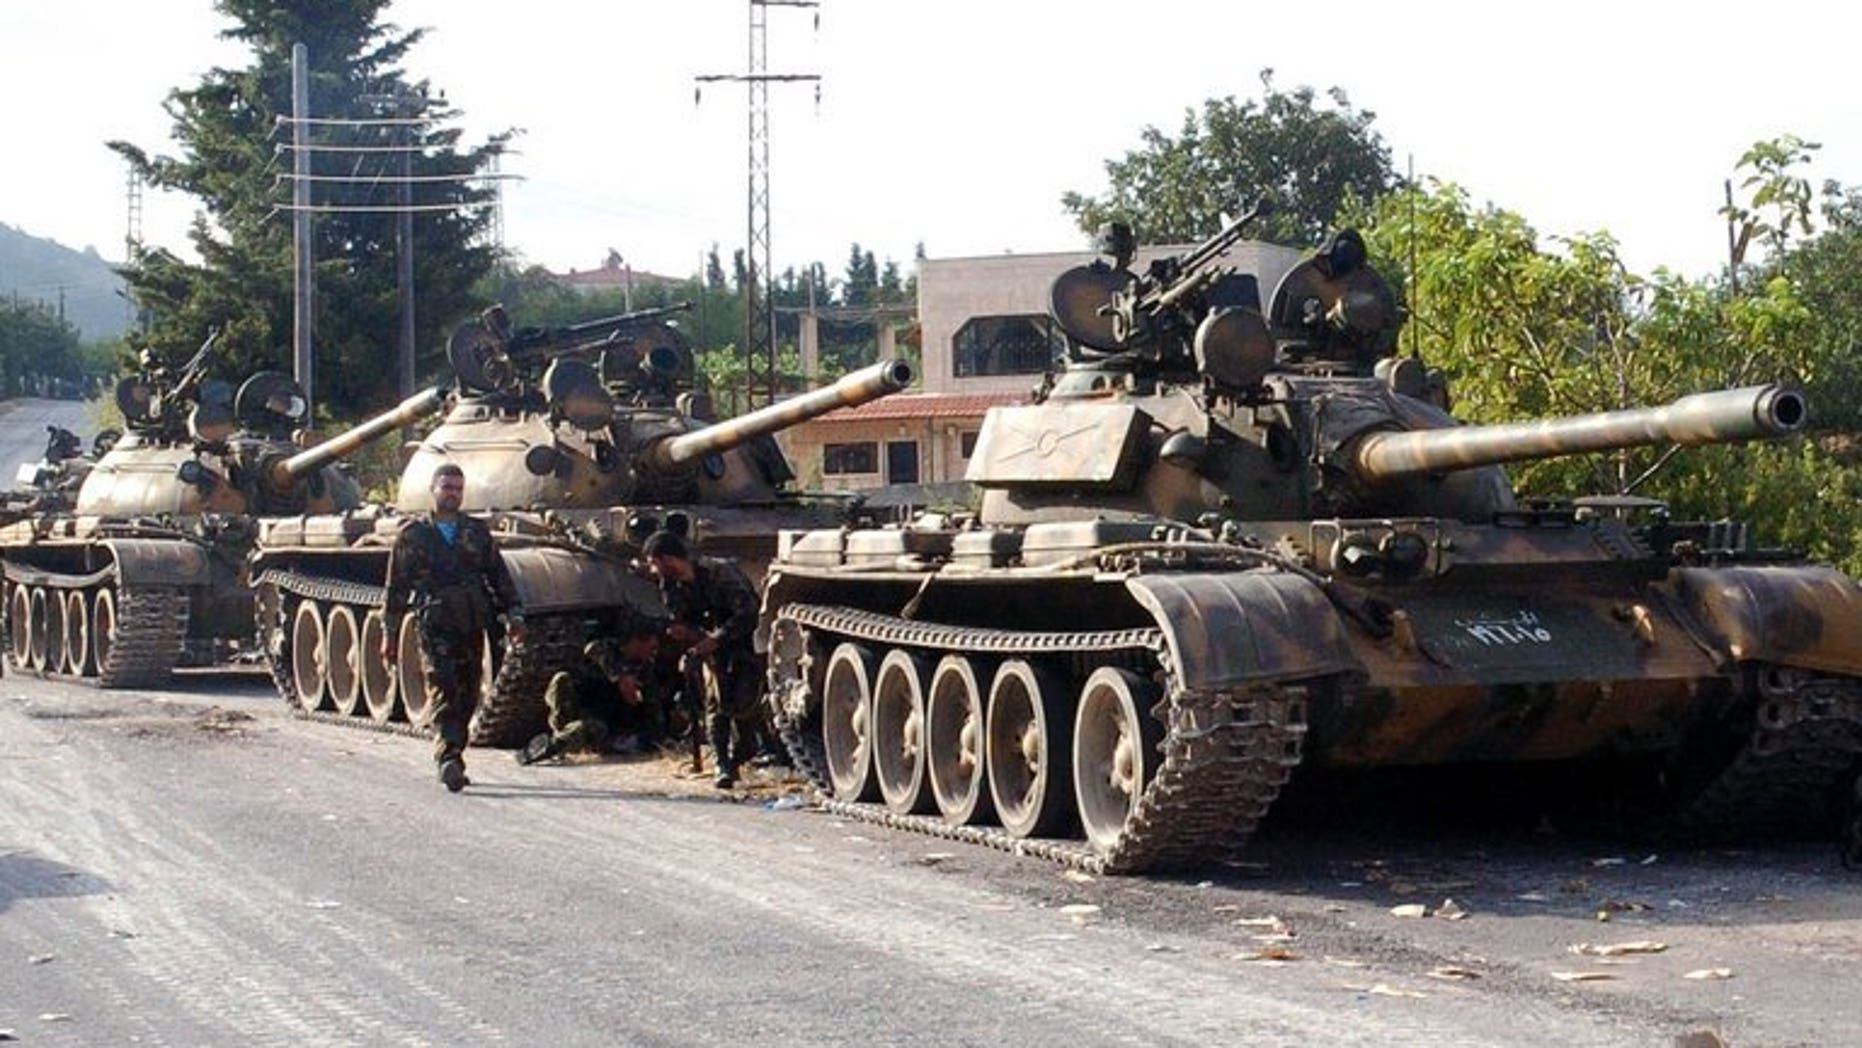 A picture released by the Syrian Arab News Agency (SANA) on August 8, 2013 shows Syrian army tanks parked on the side of a road during an alleged pursuit of opposition fighters in the Latakia province, western Syria. The Syrian army has recaptured all rebel-held positions in Latakia, President Bashar al-Assad's home province, state-run SANA news agency reported Monday quoting a military source.